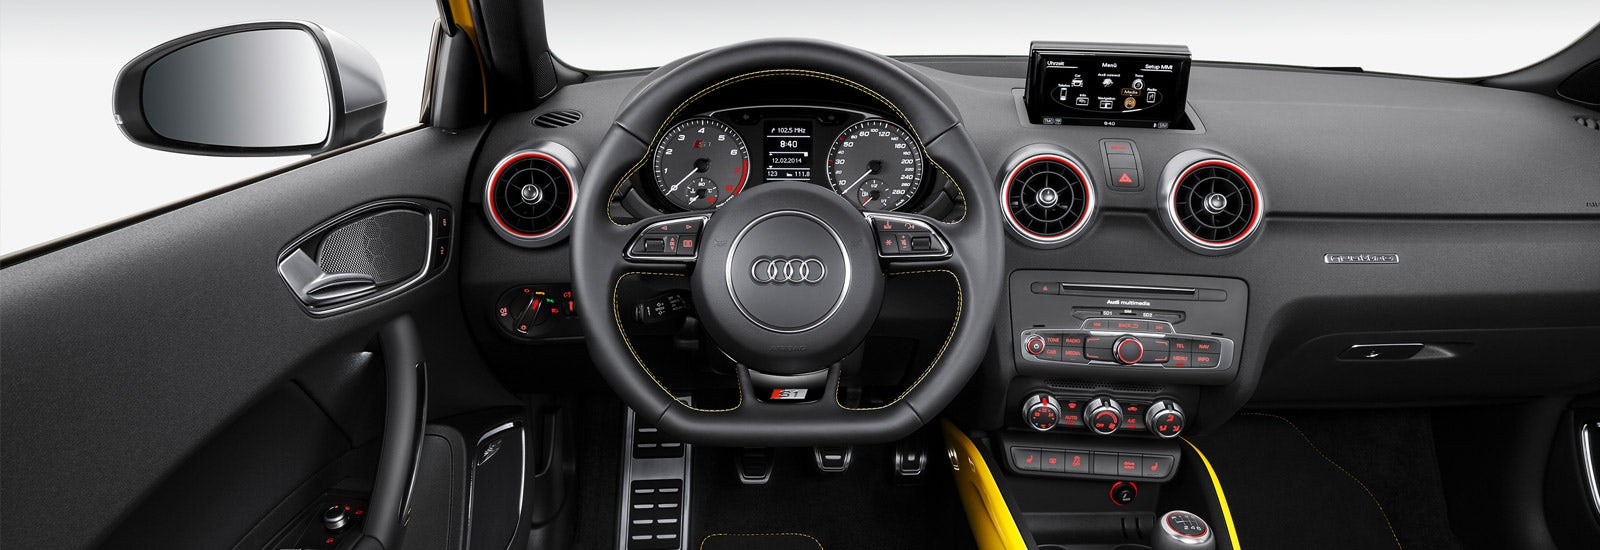 2017 Audi RS1 price, specs and release date | carwow